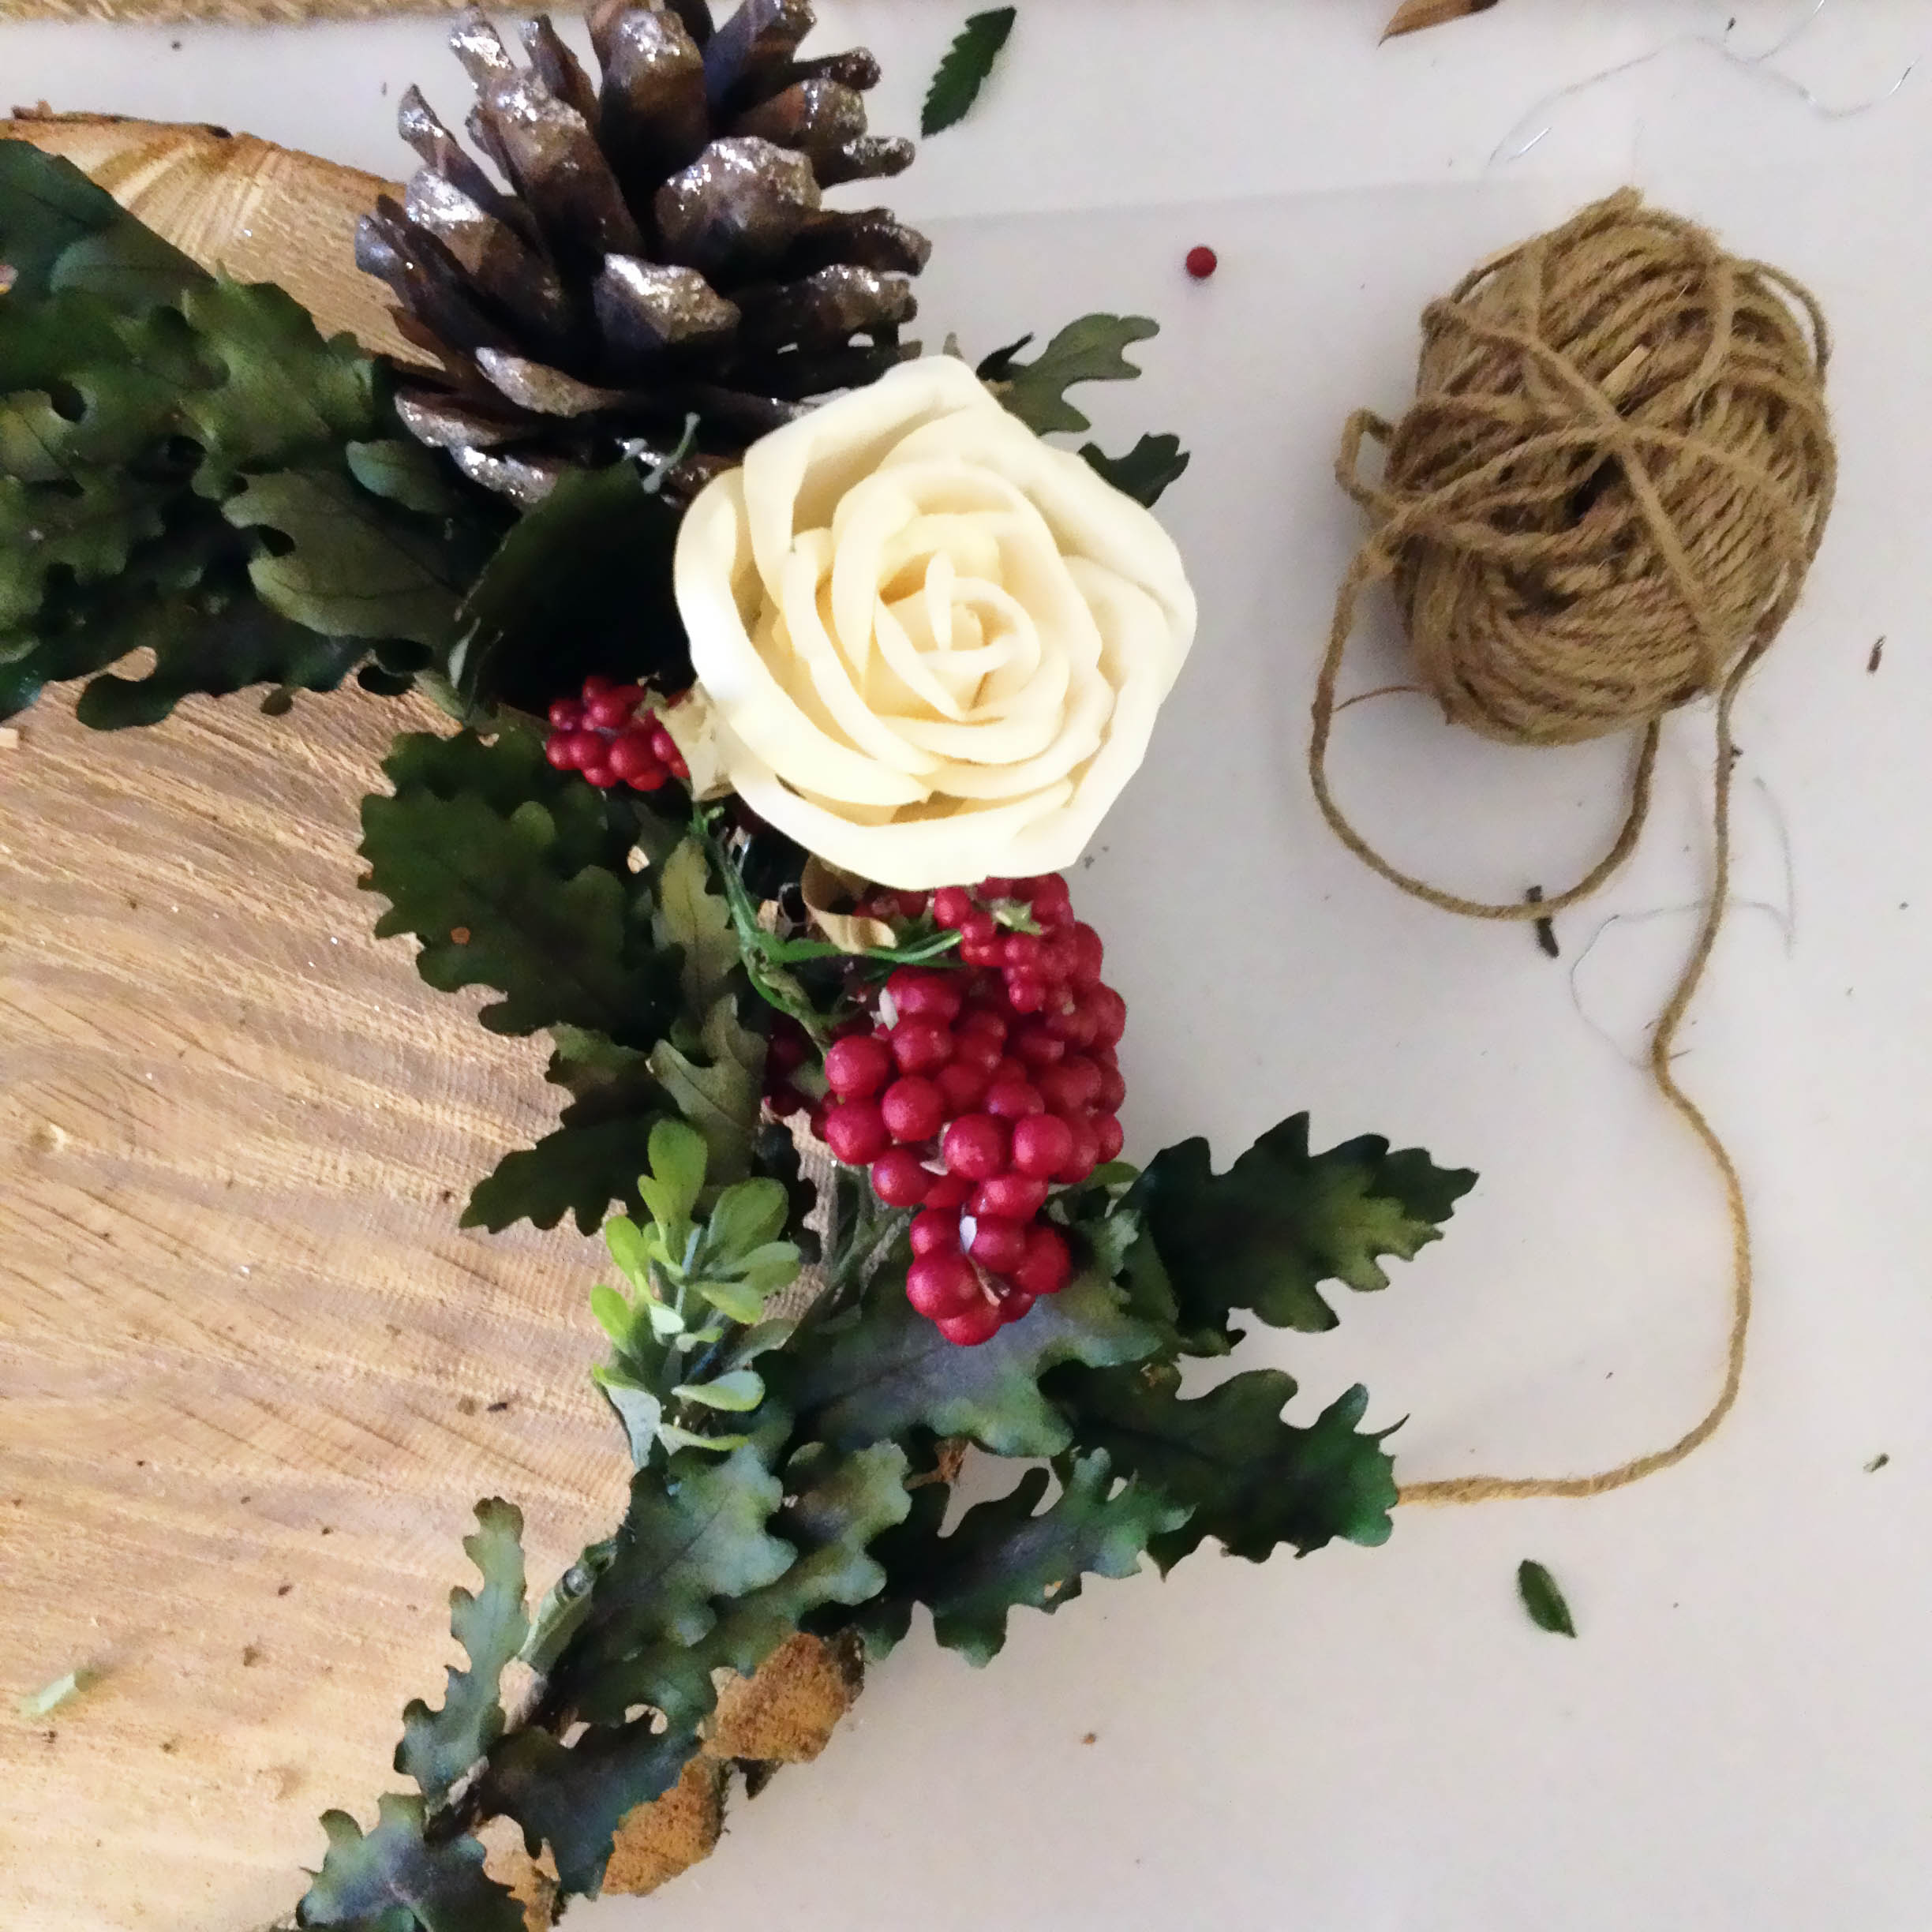 Wreath Making Workshop, Christmas Decorations, Christmas Wreath, DIY, Holiday Decor, Christmas Decor, Crafts, Lifestyle Blogger, Toronto Blogs, Canadian Blogger